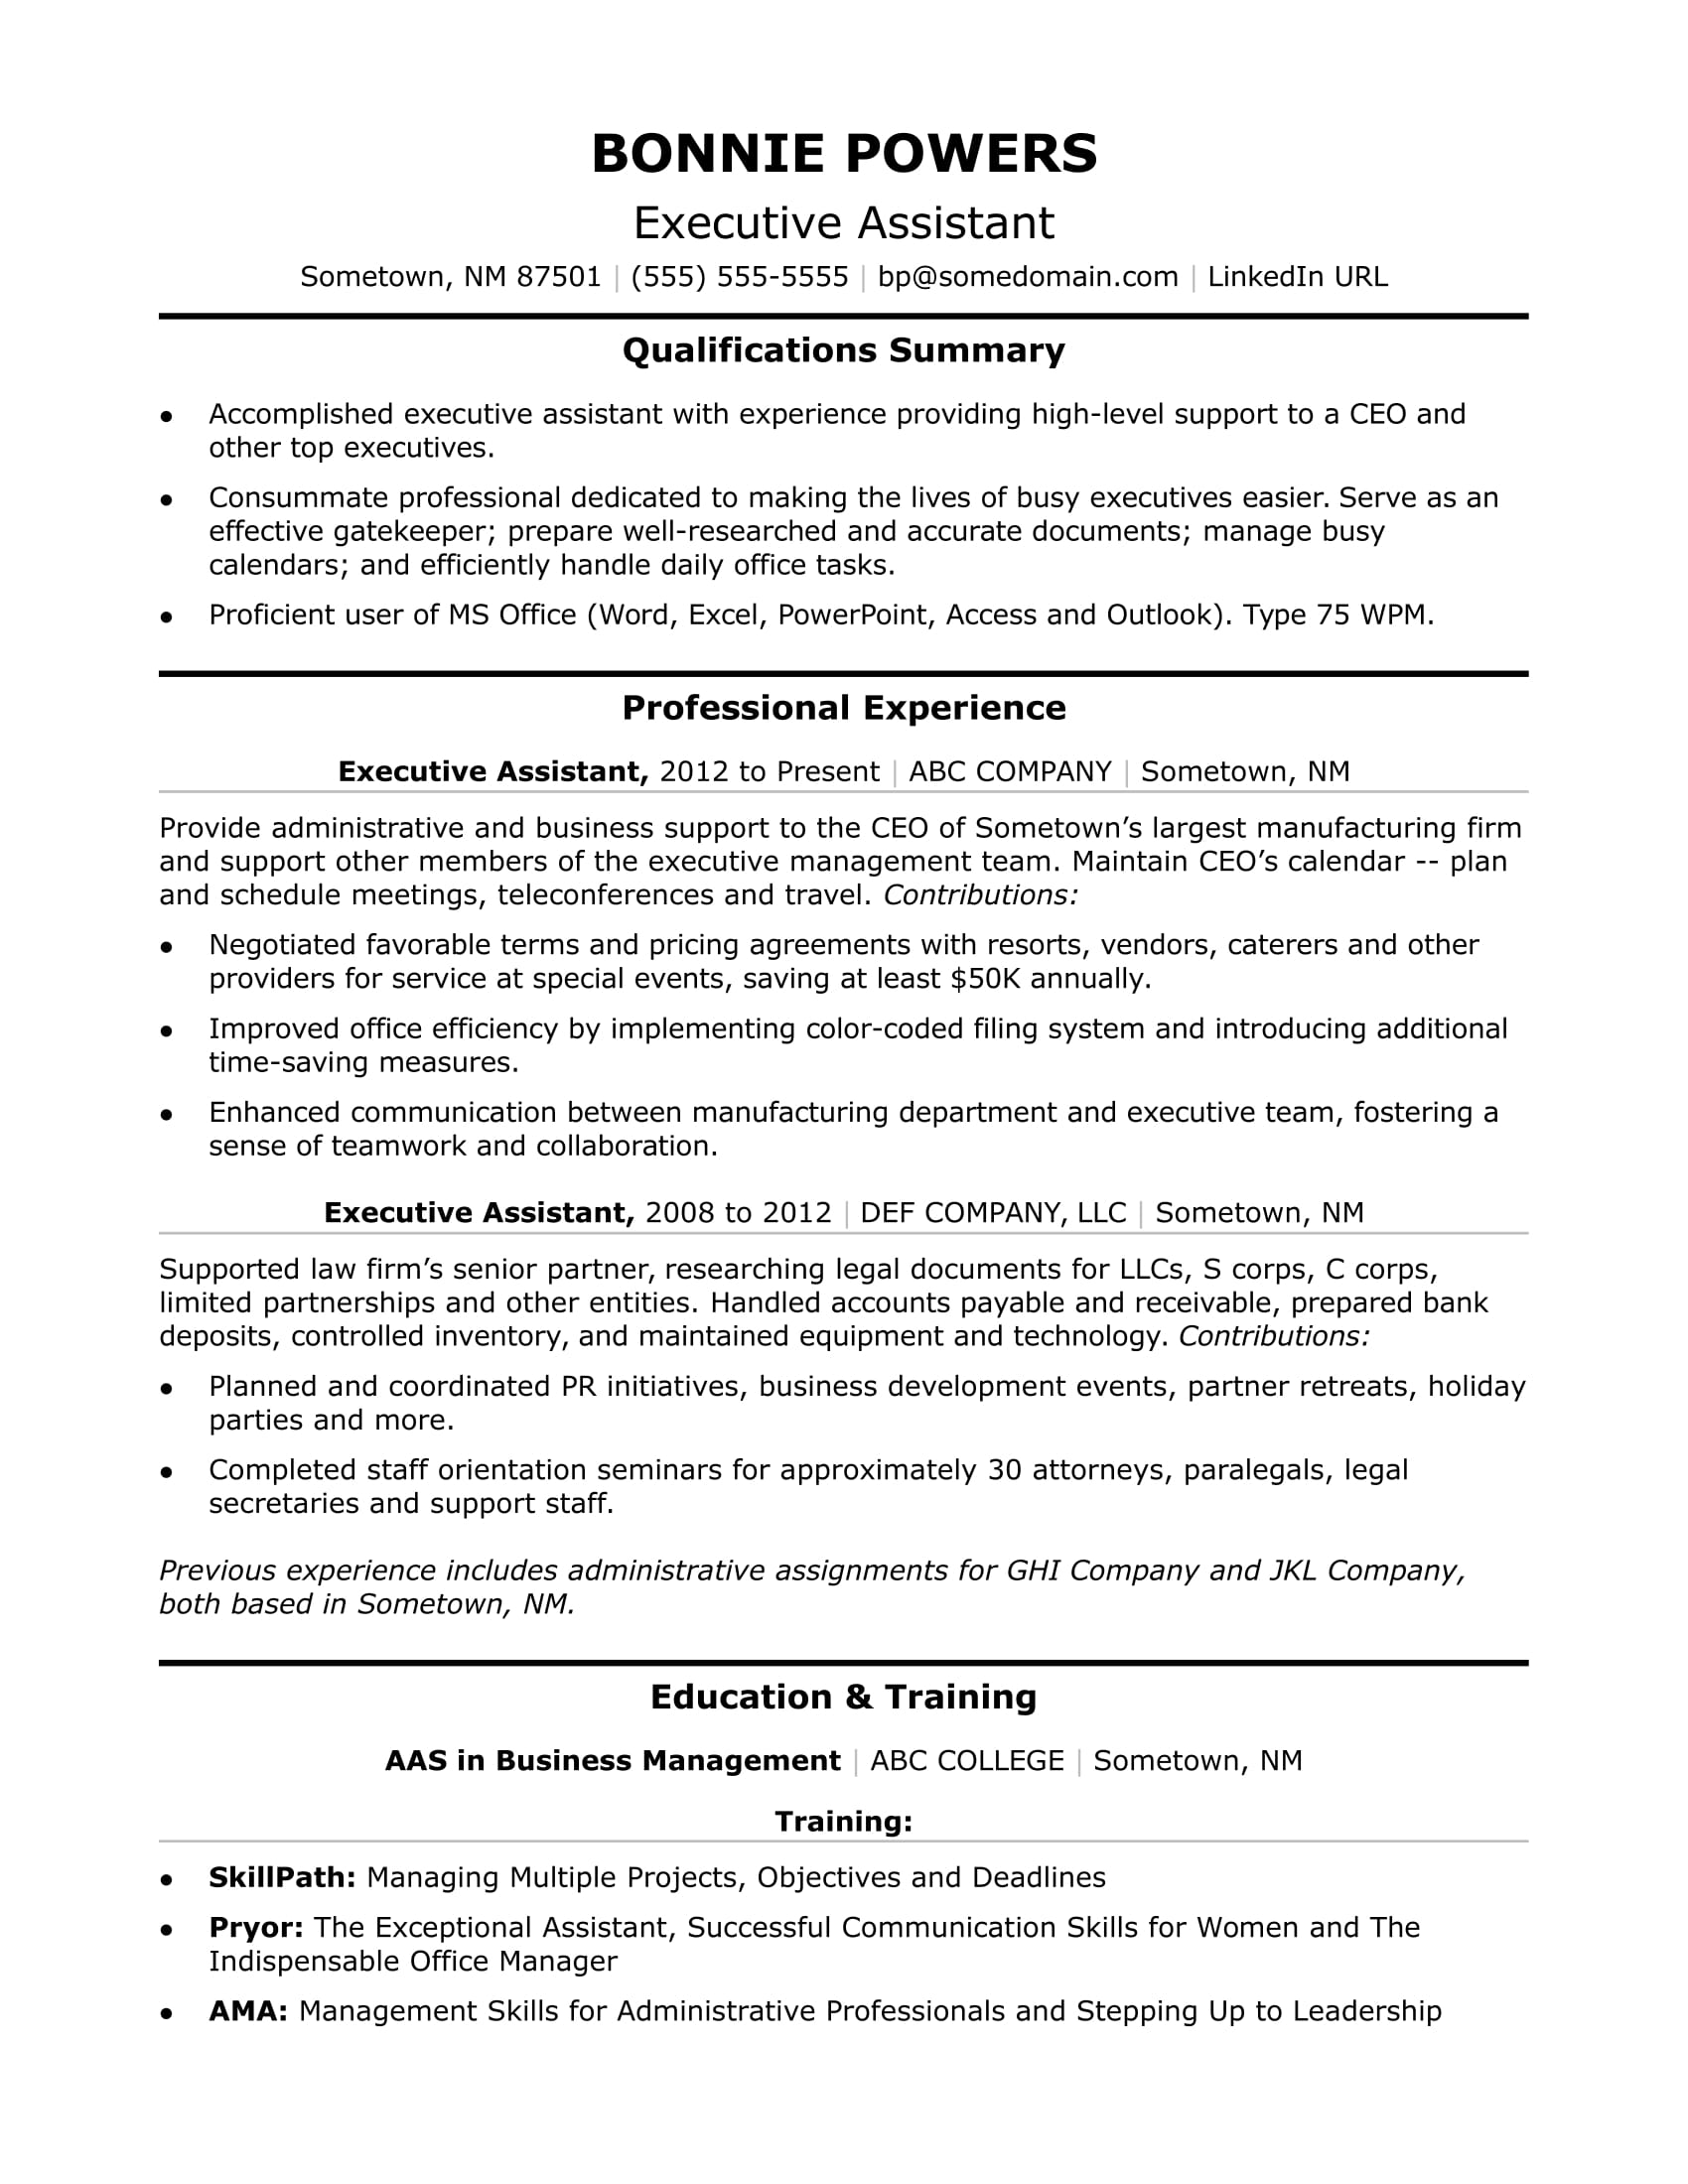 Executive Administrative Assistant Resume Sample  Personal Assistant Resumes